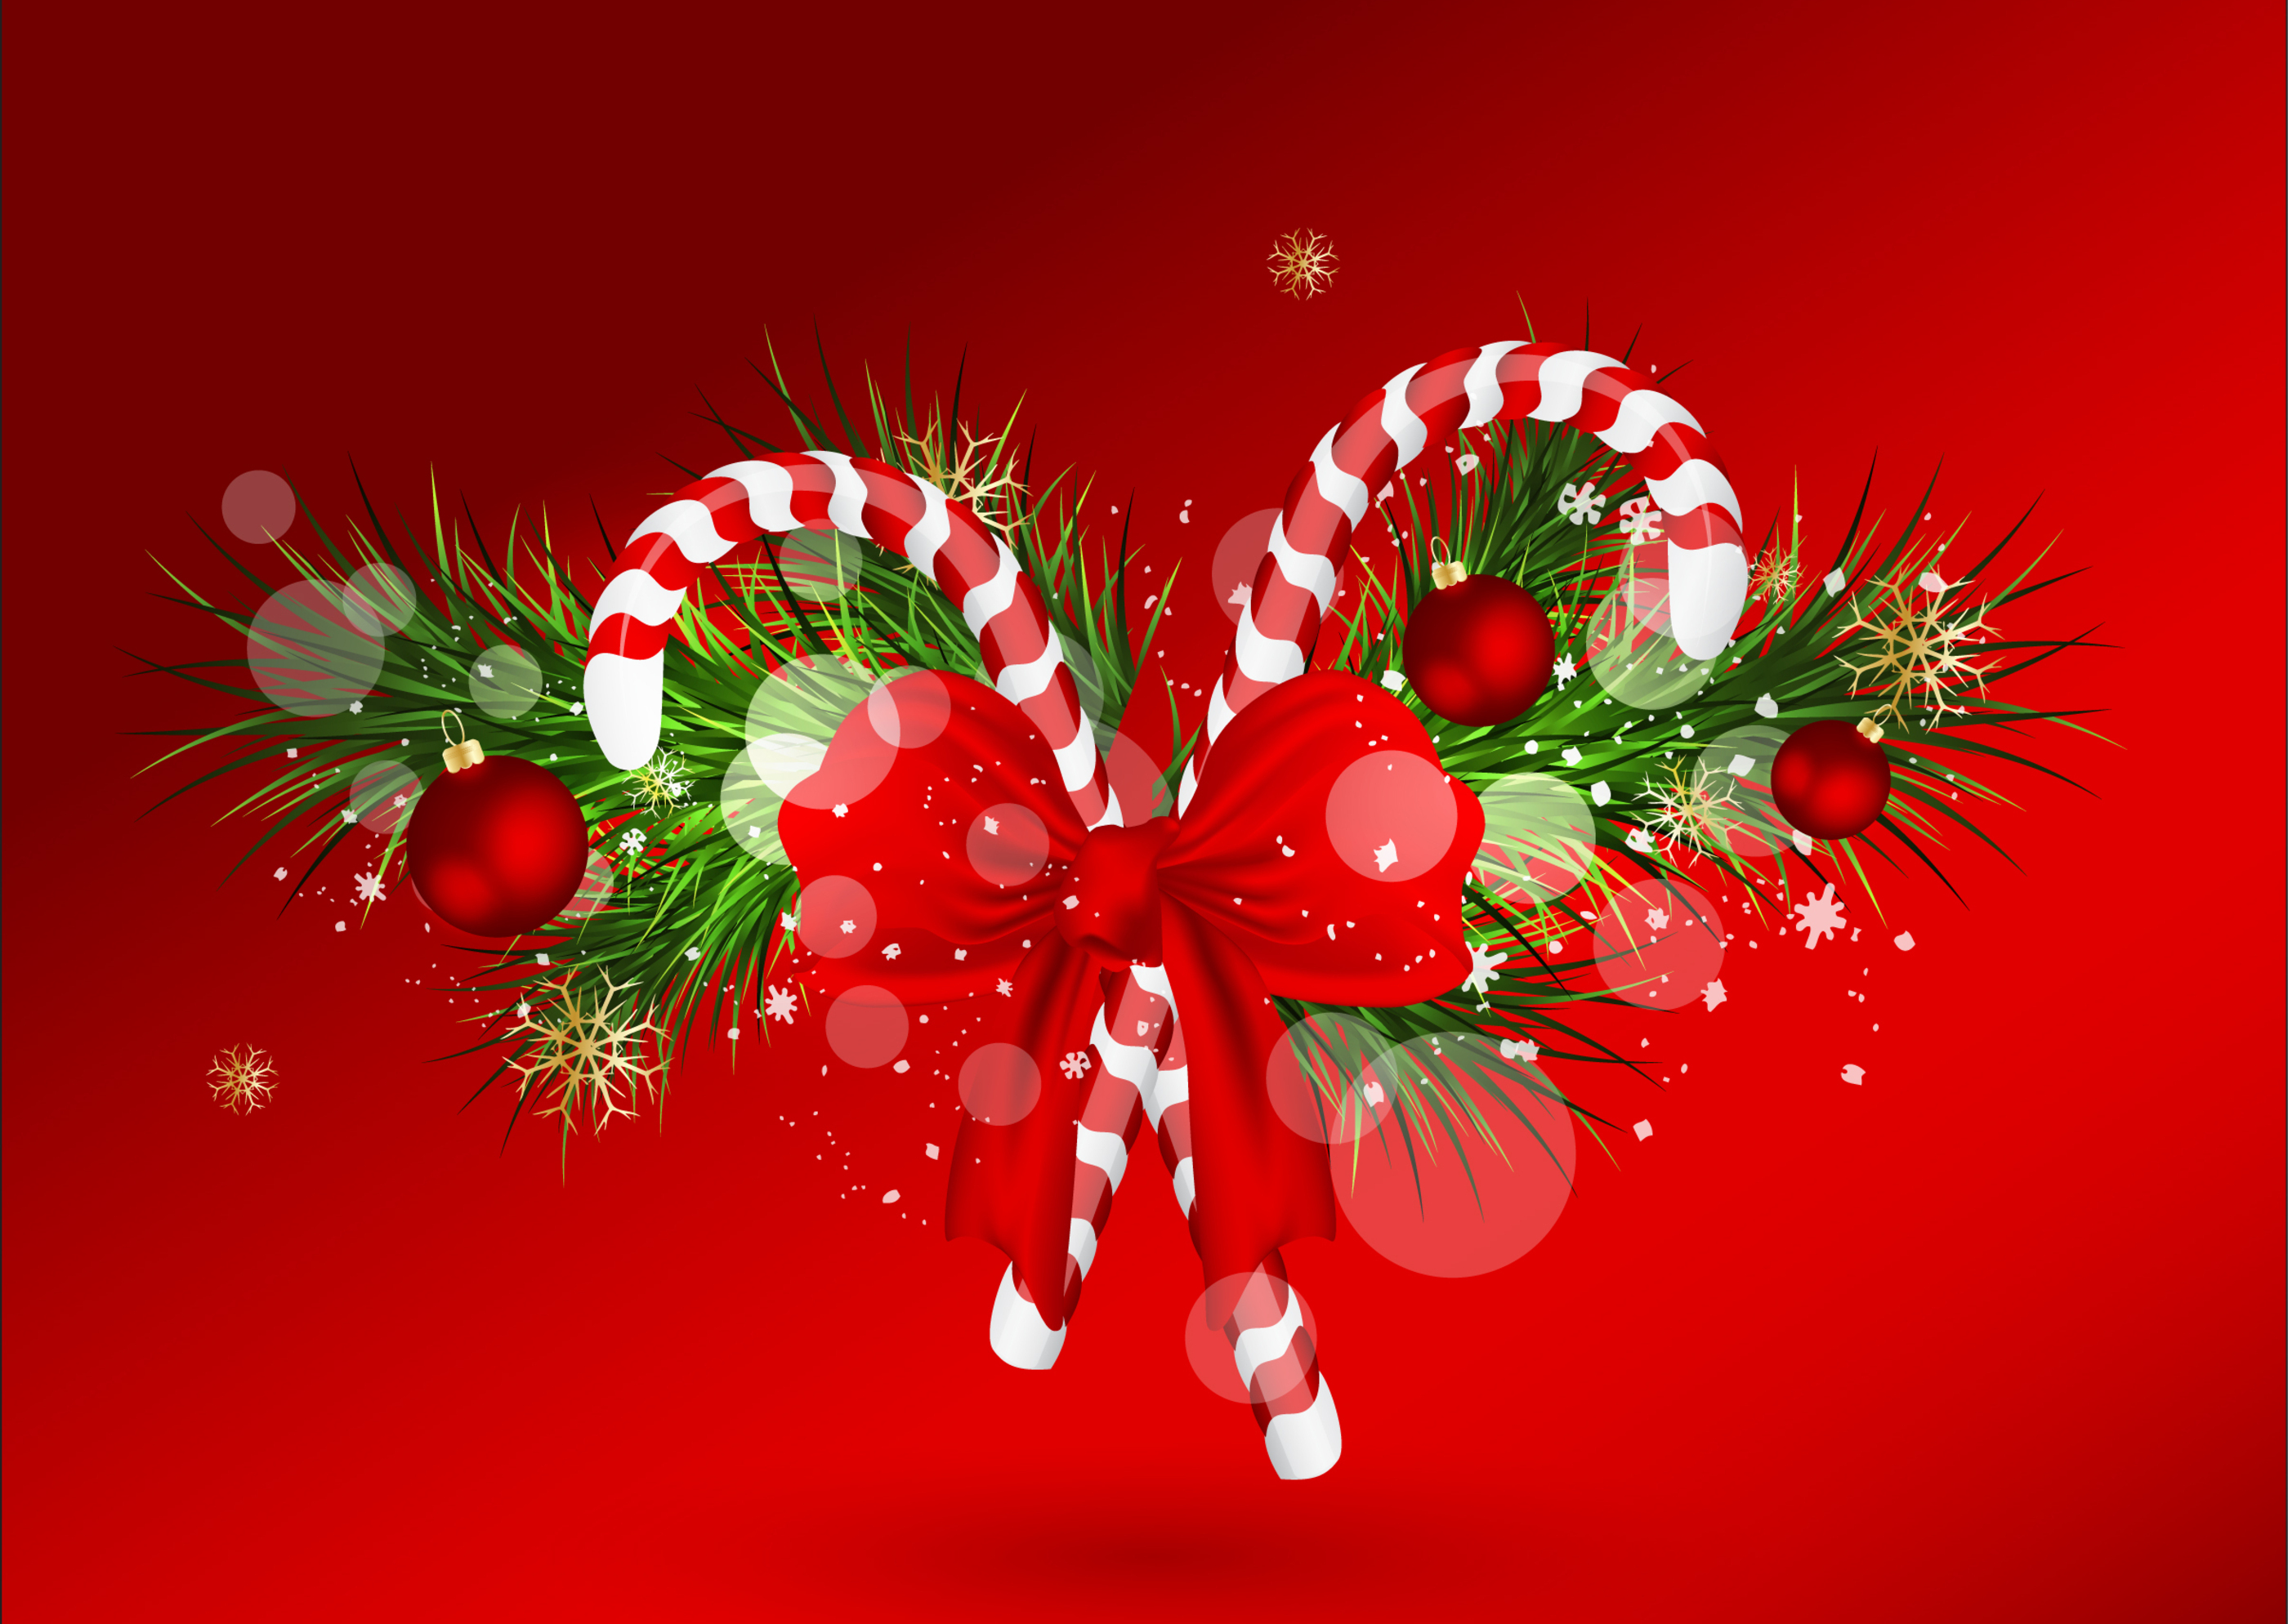 85 Candy Cane HD Wallpapers